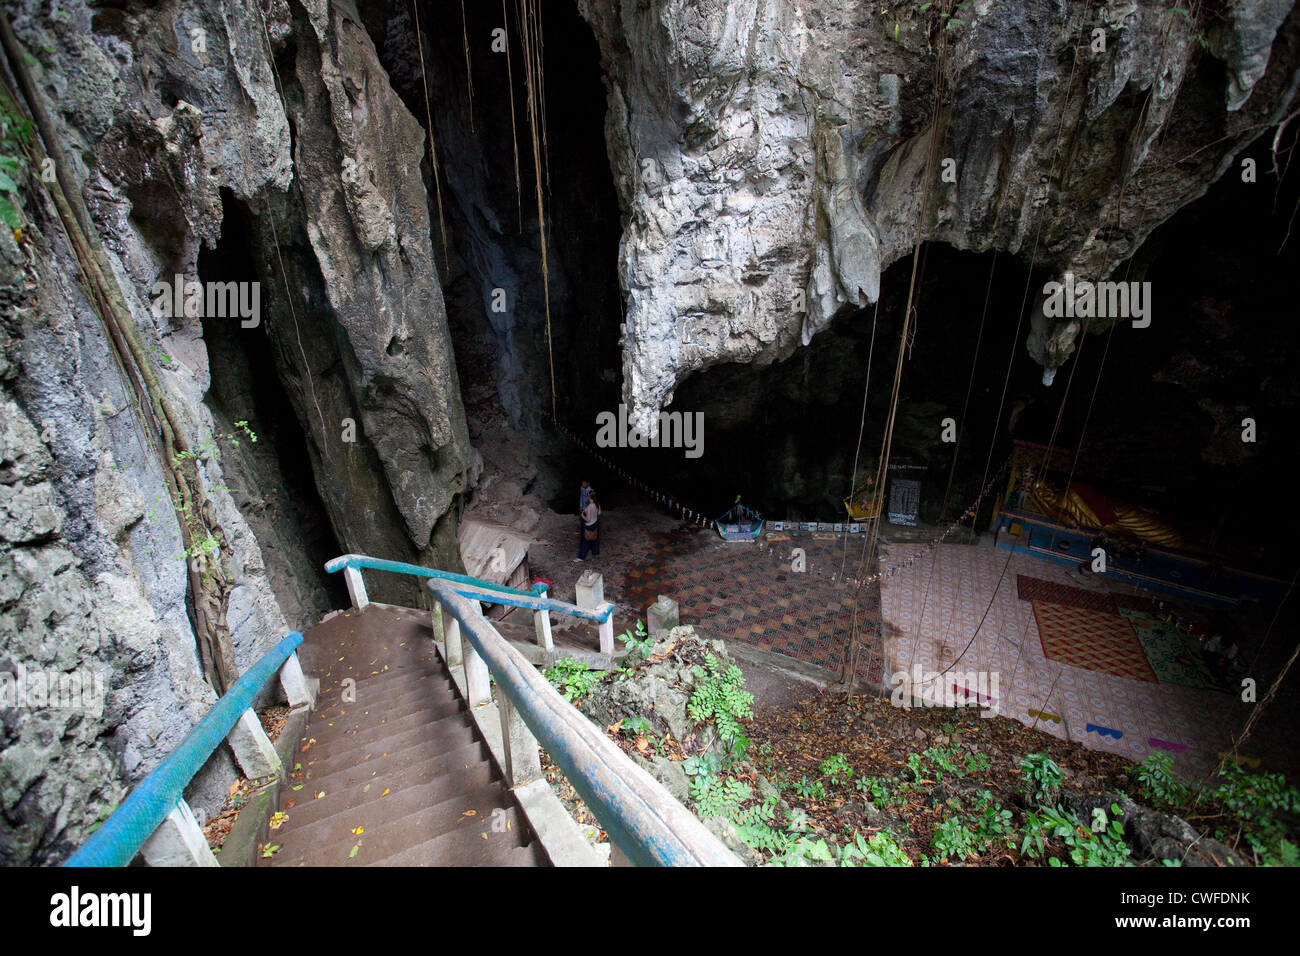 Killing Cave High Resolution Stock Photography and Images - Alamy